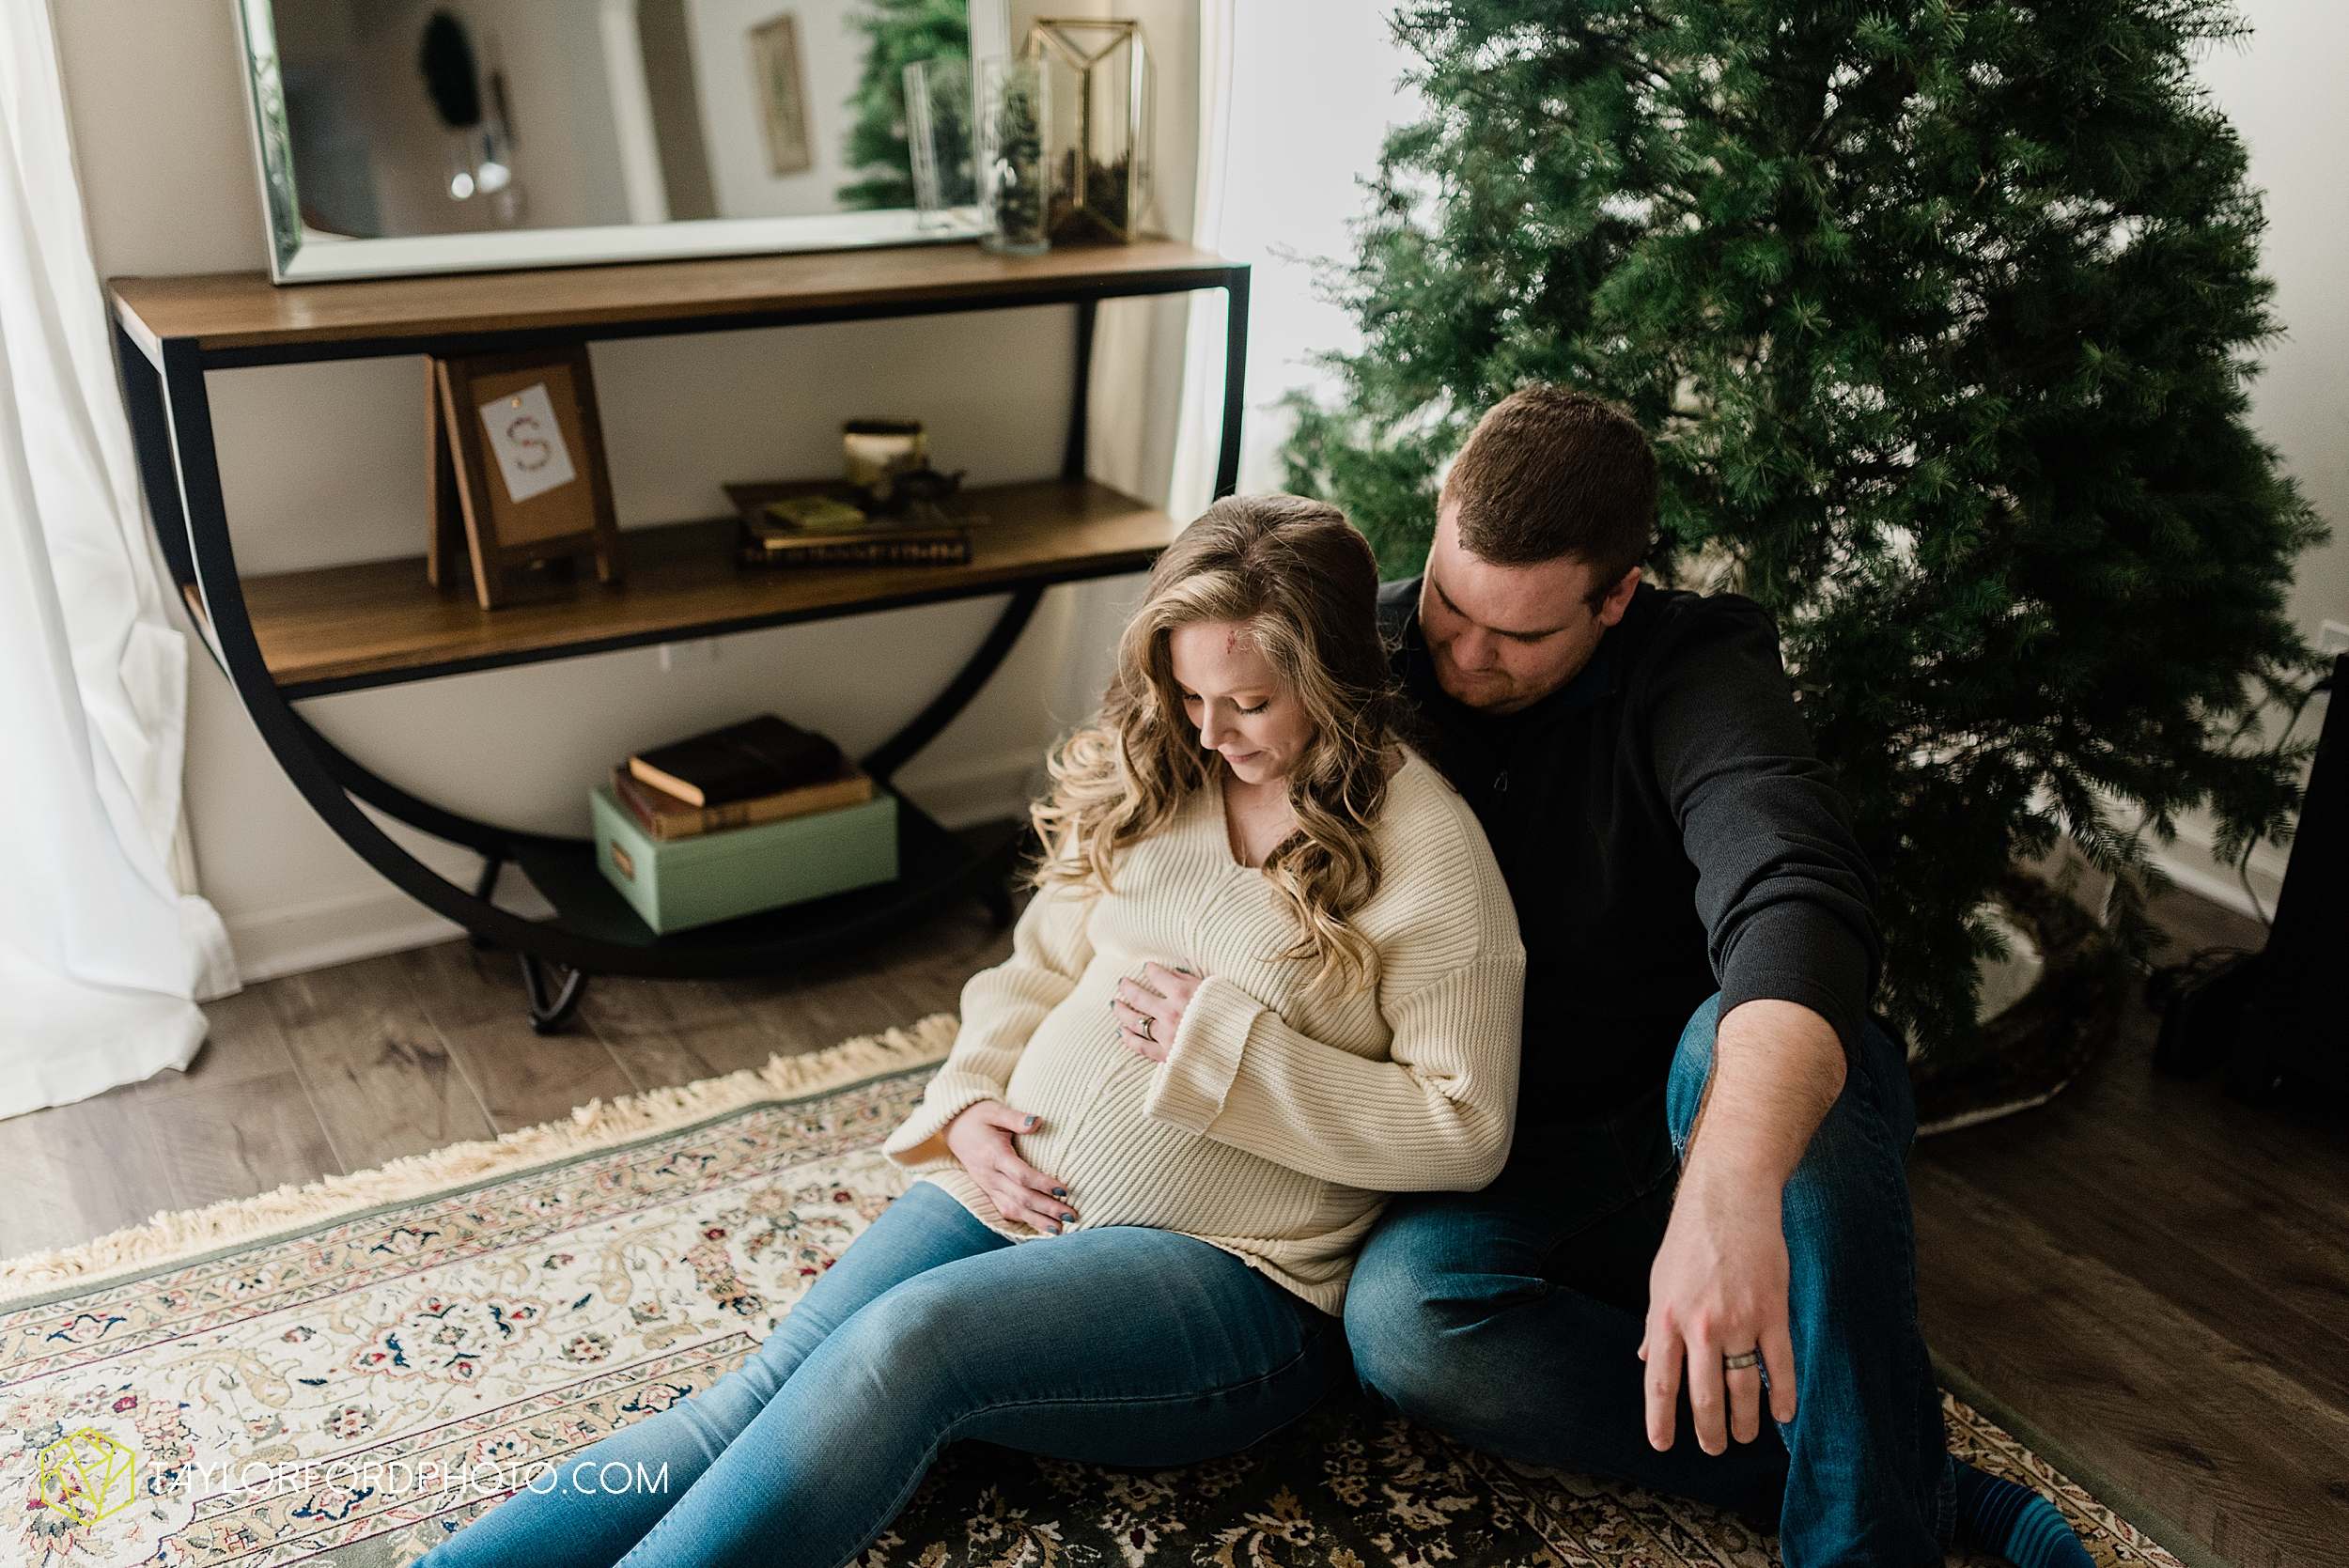 schafer-maternity-pregnant-at-home-fort-wayne-indiana-photography-taylor-ford-hirschy-photographer_2262.jpg